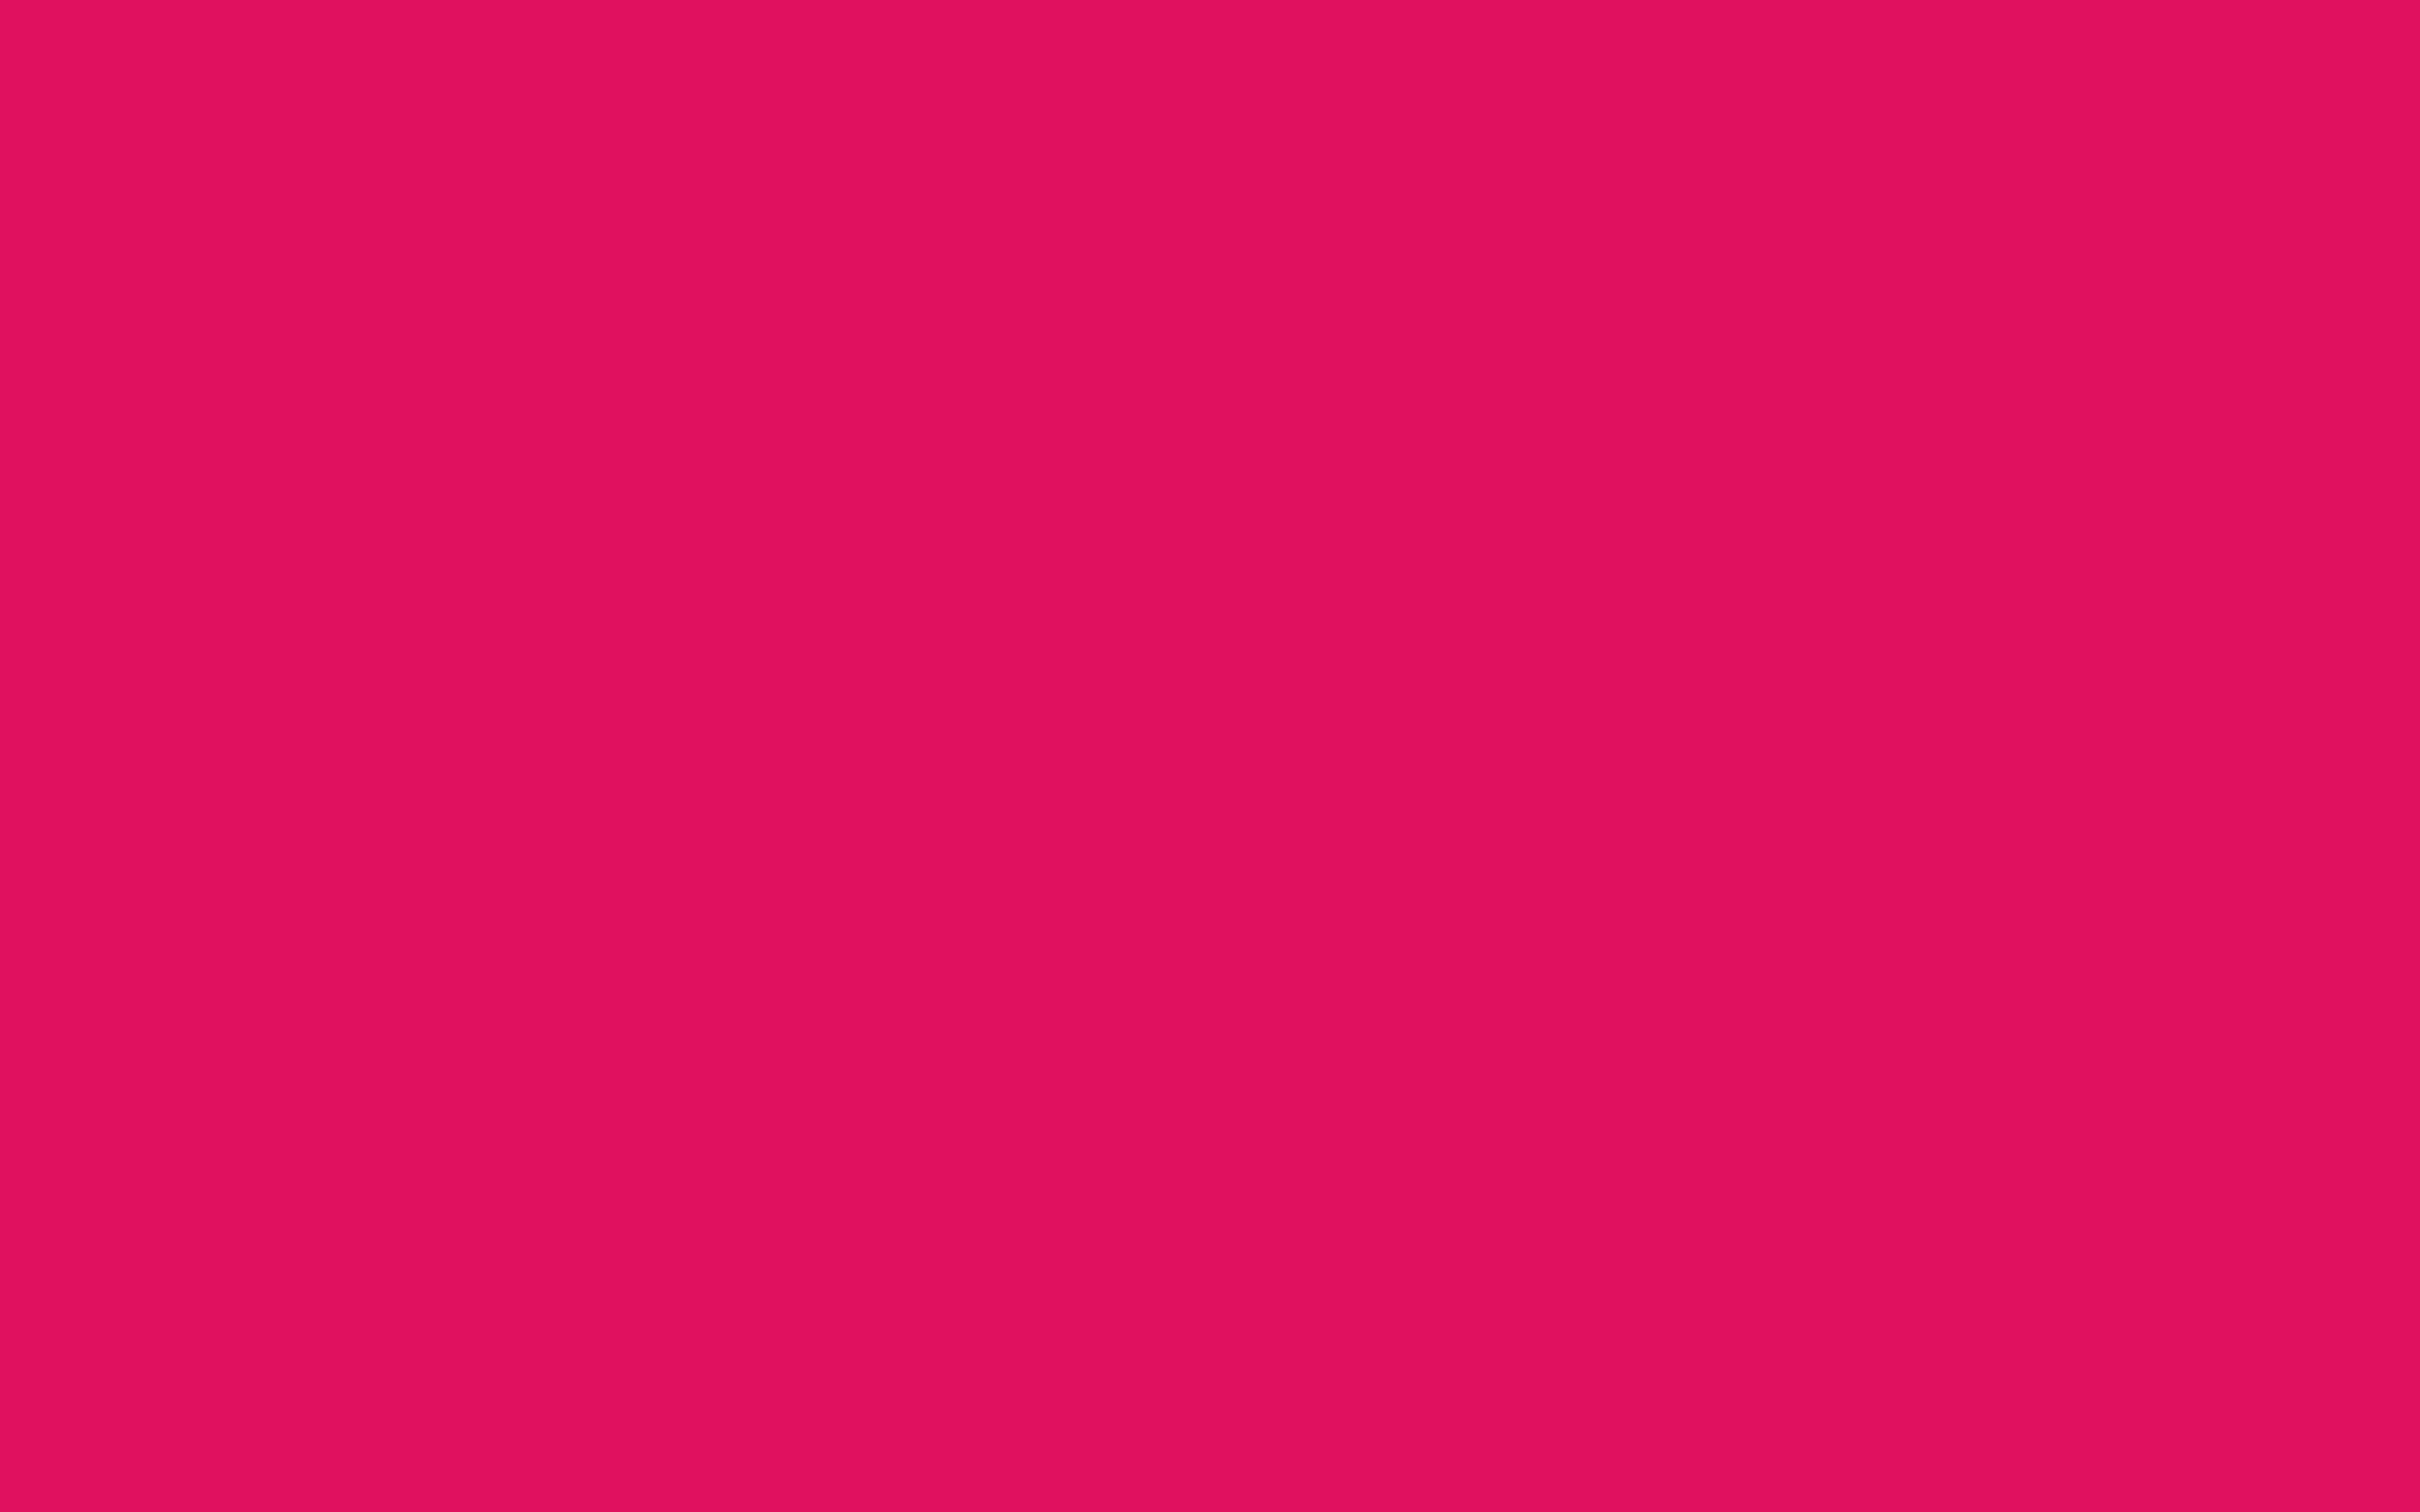 2880x1800 Ruby Solid Color Background